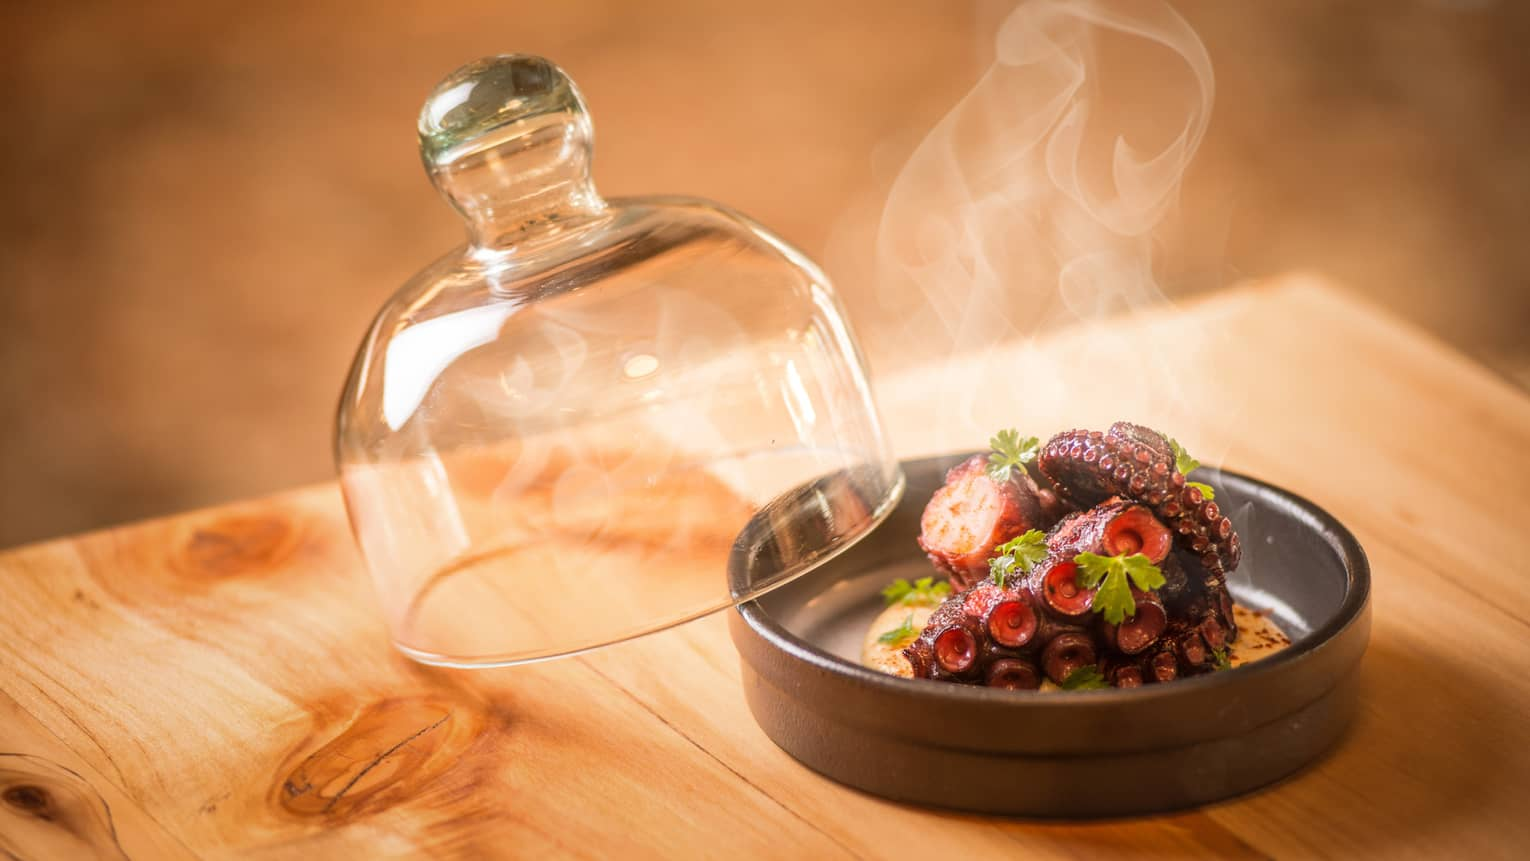 Steam rises from Grilled Octopus in round black dish with glass lid